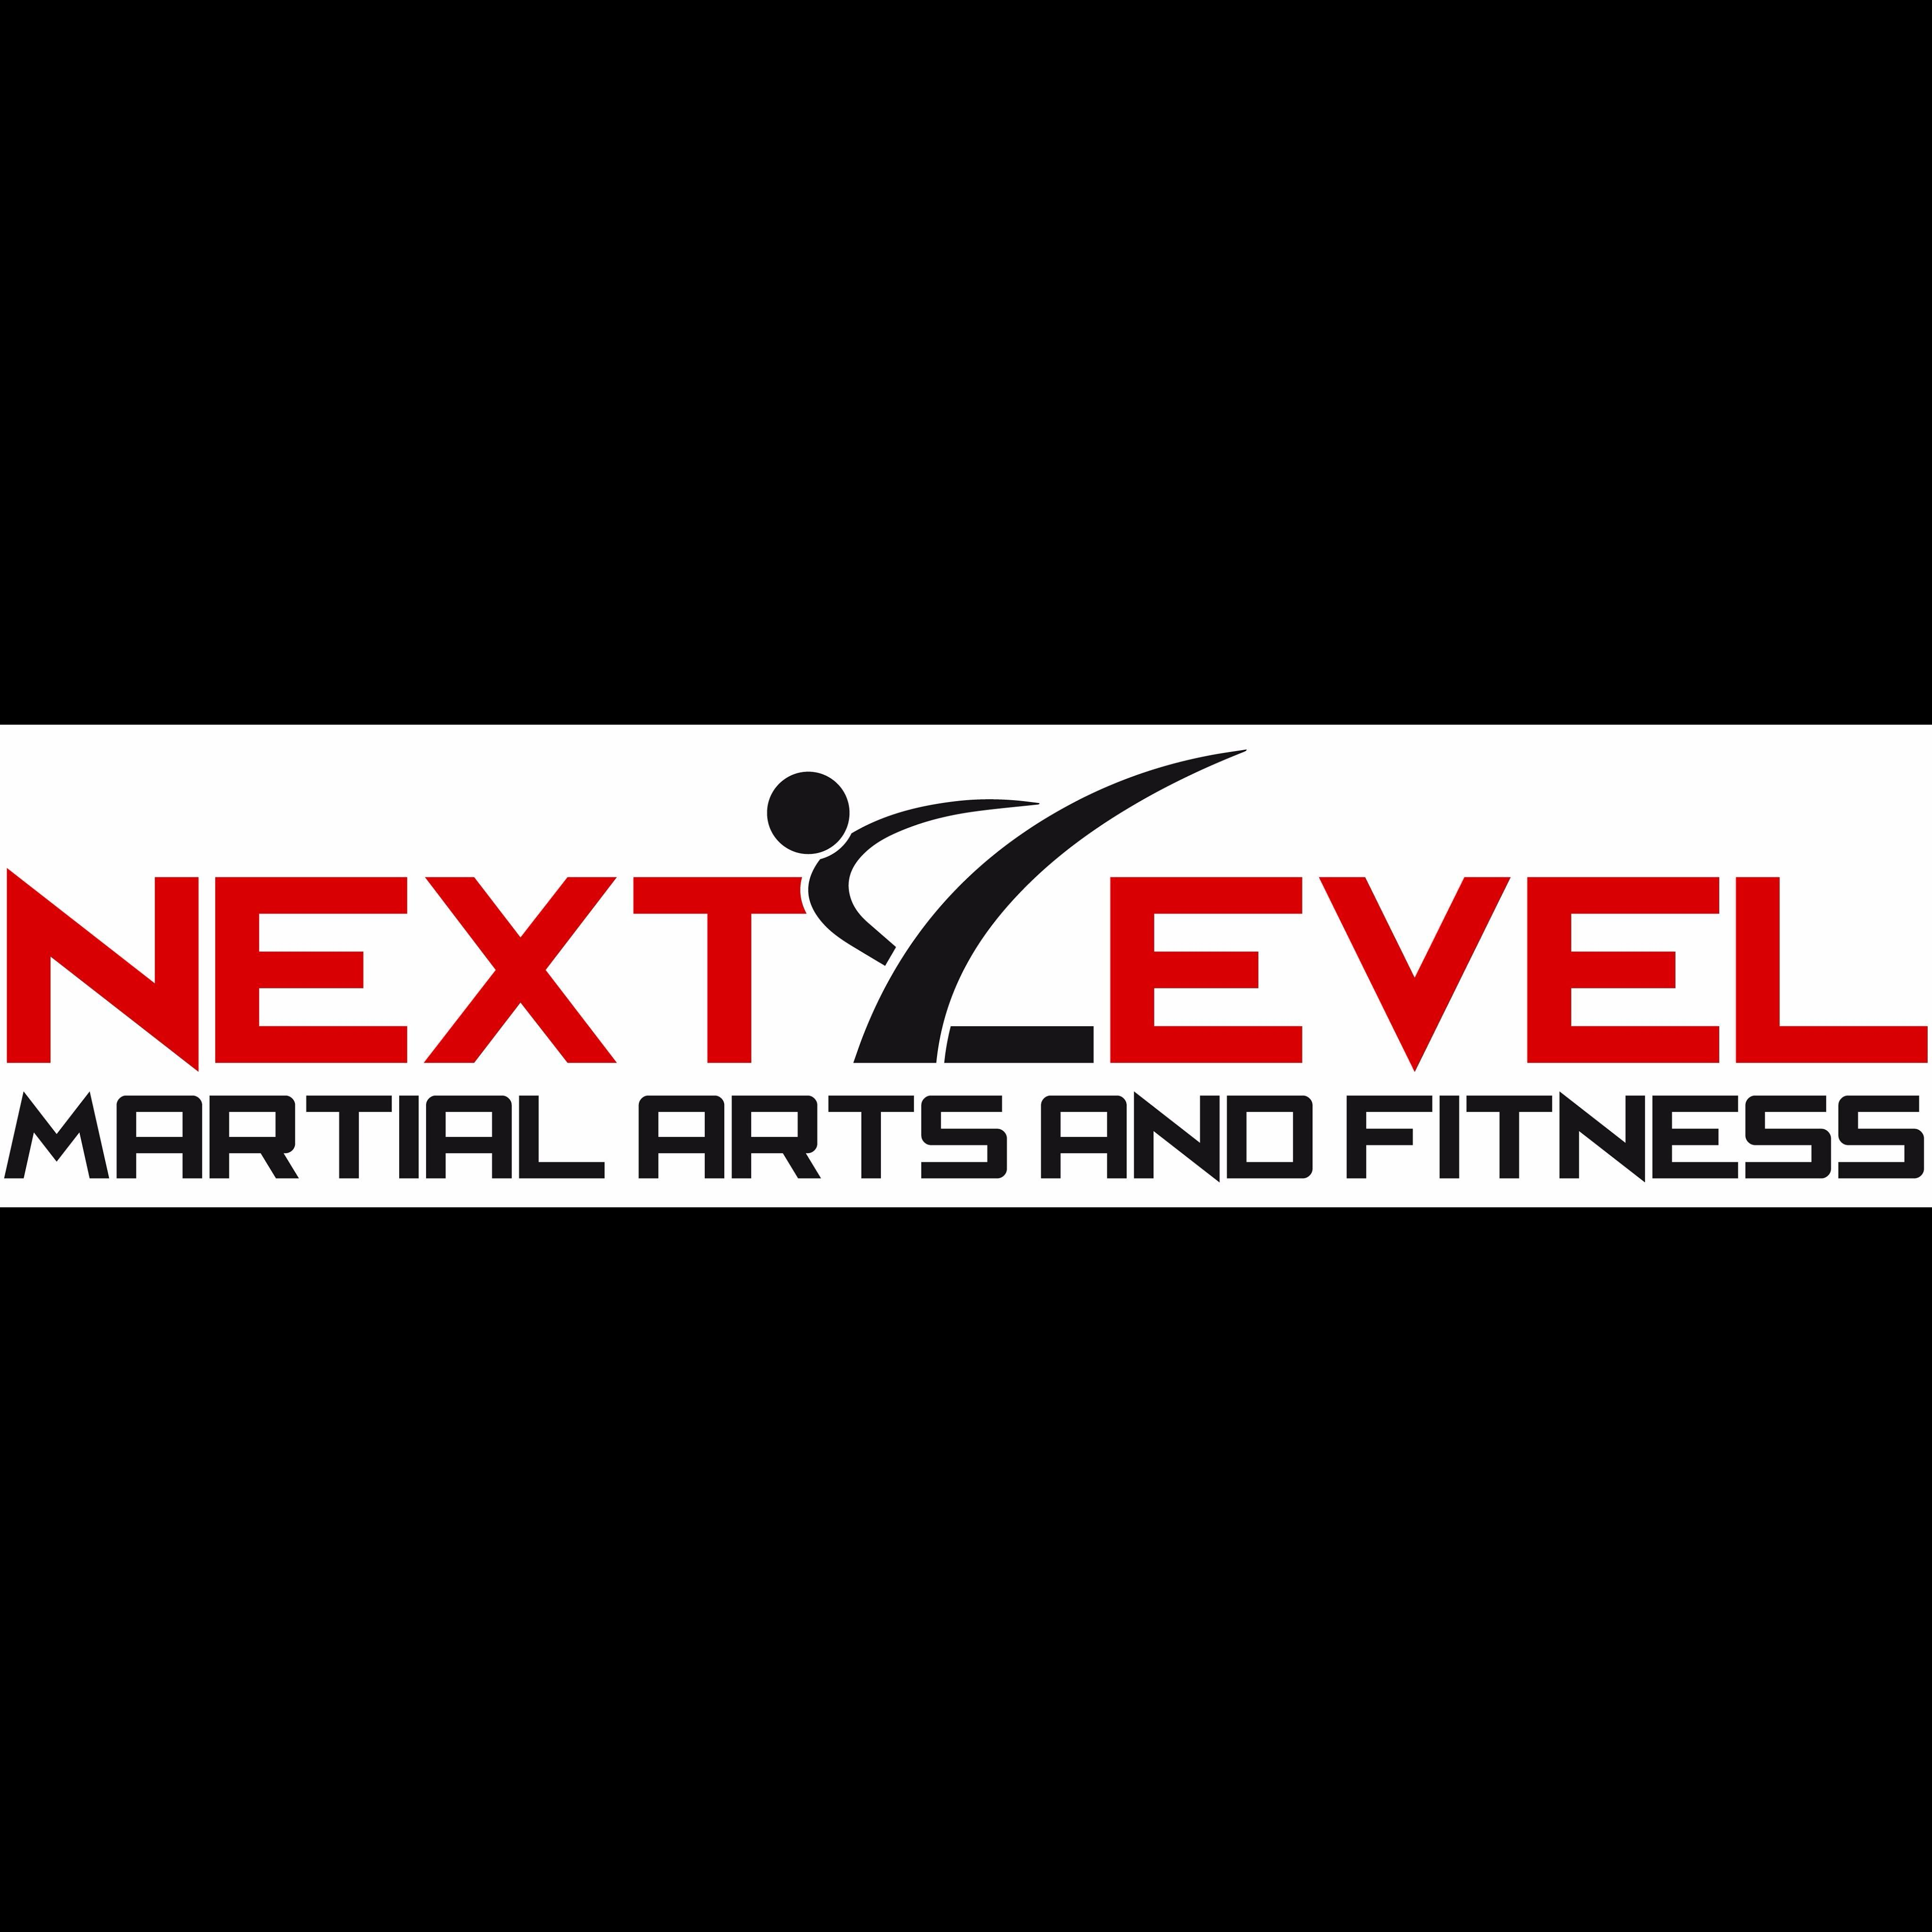 Next Level Martial Arts and Fitness